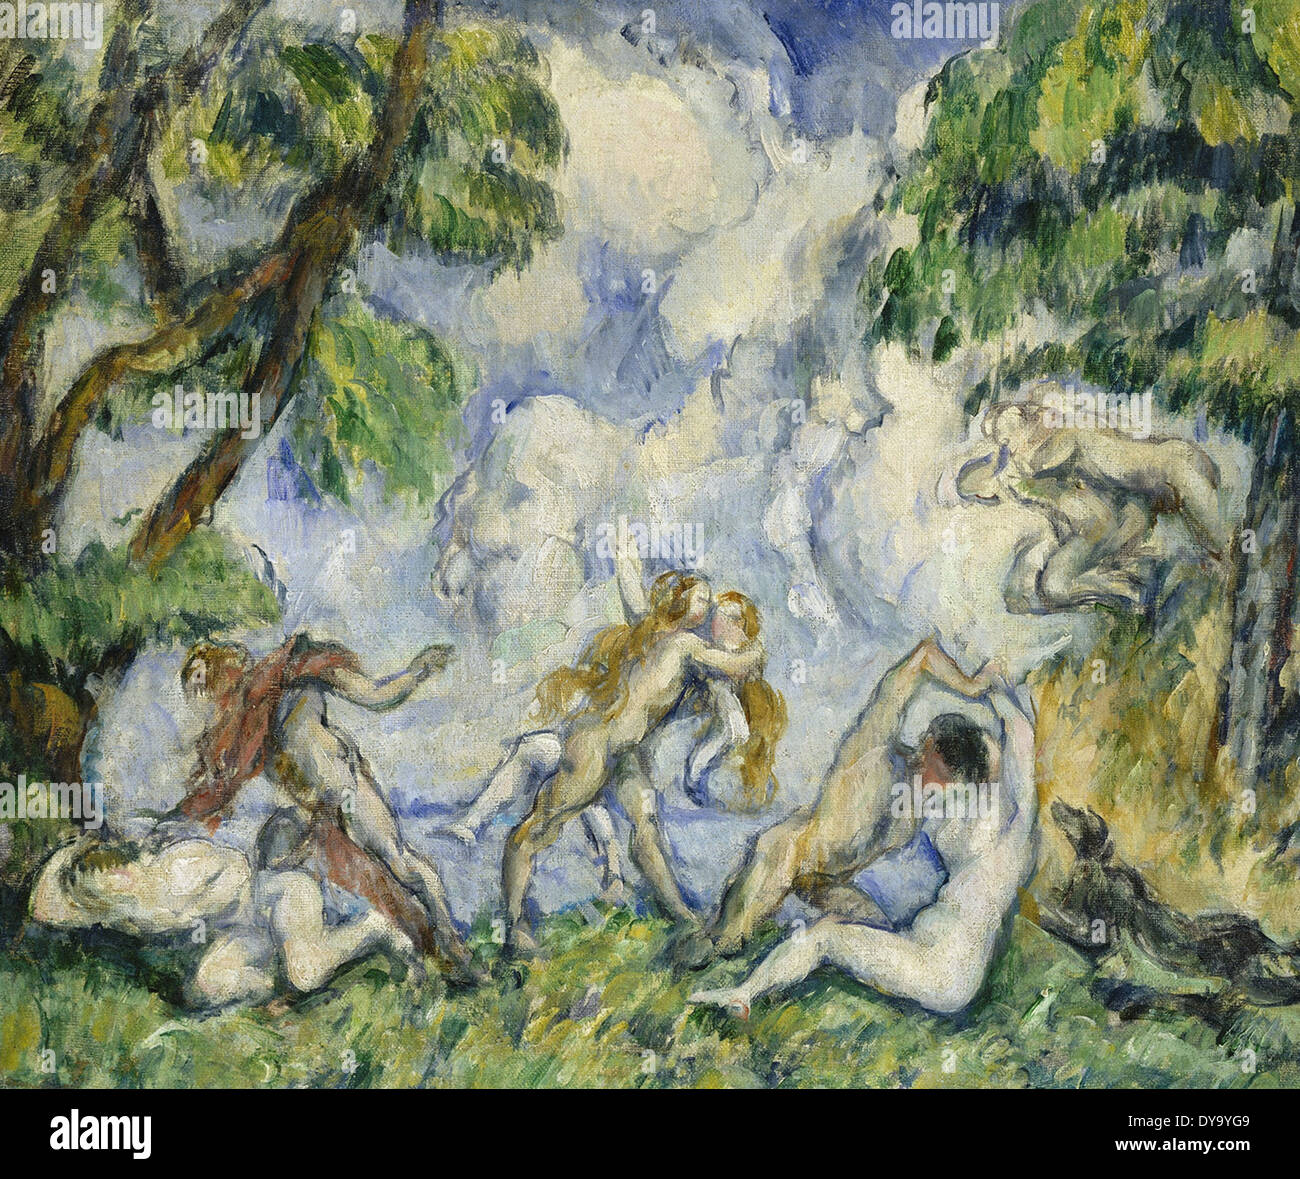 Paul Cezanne The Battle of Love - Stock Image